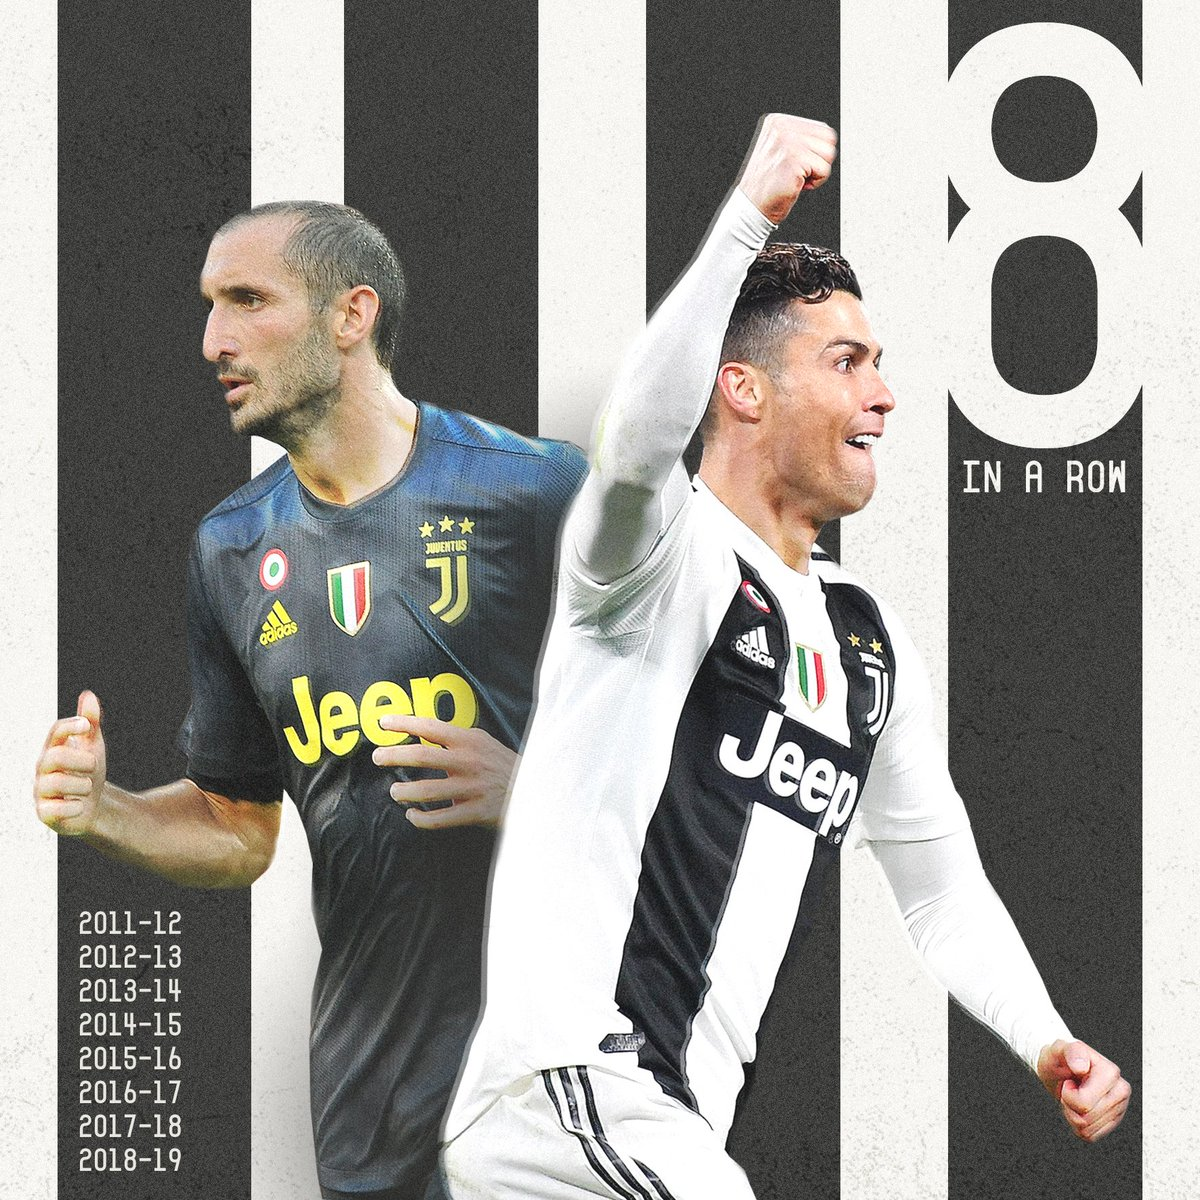 ⚫️⚪️ 8 in a row for Juve  🏆🏆🏆🏆🏆🏆🏆🏆